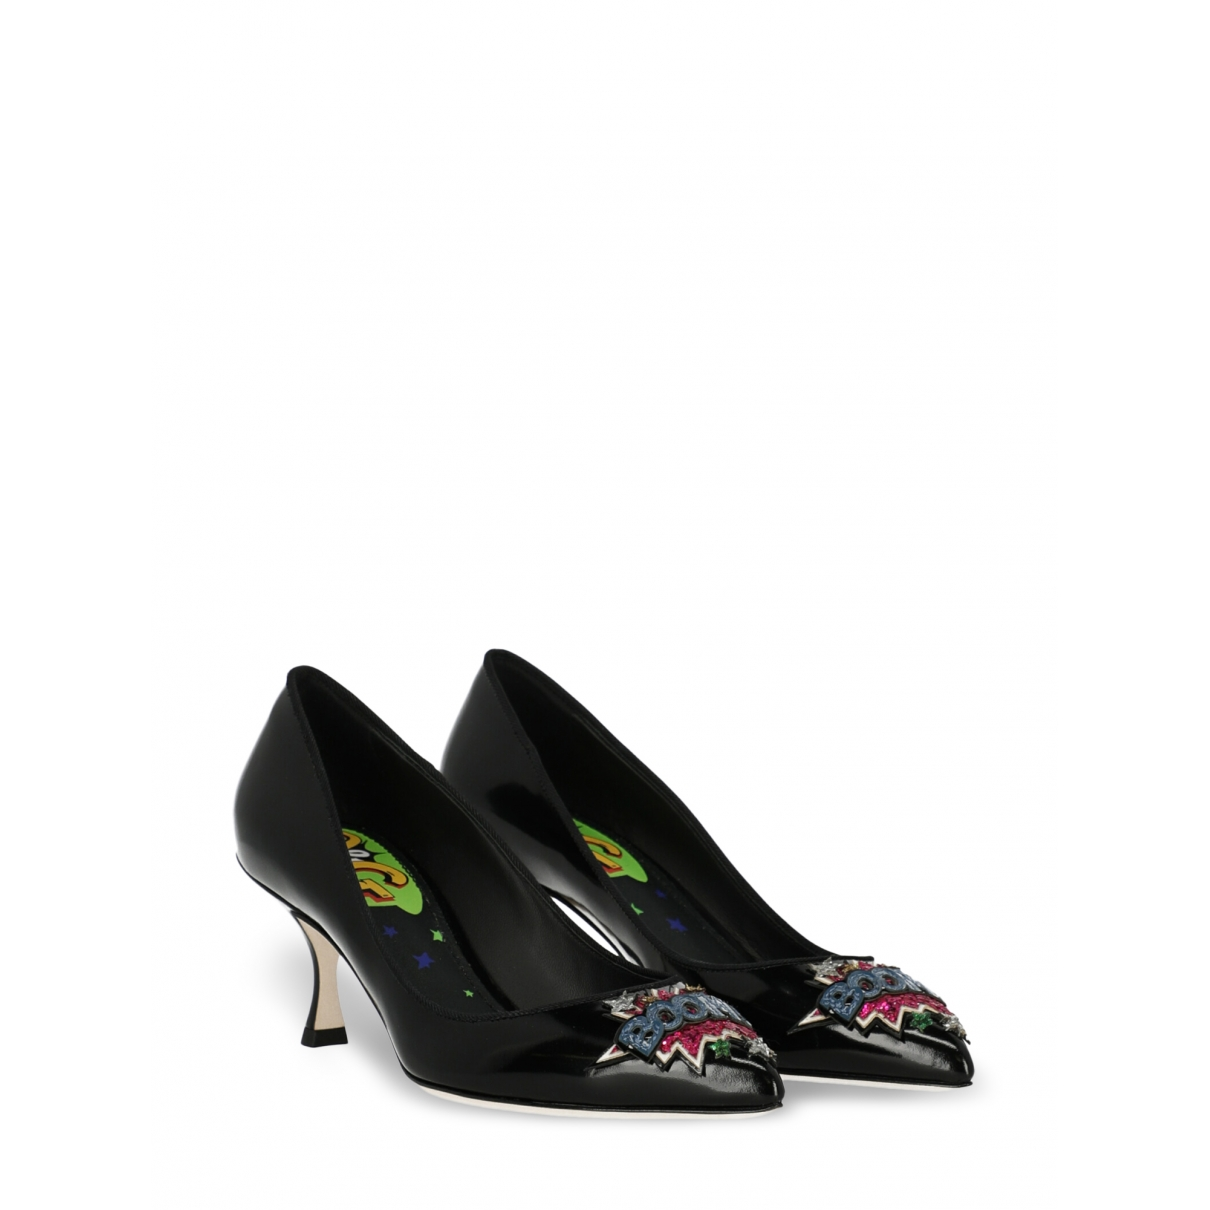 Dolce & Gabbana \N Black Patent leather Heels for Women 36 IT